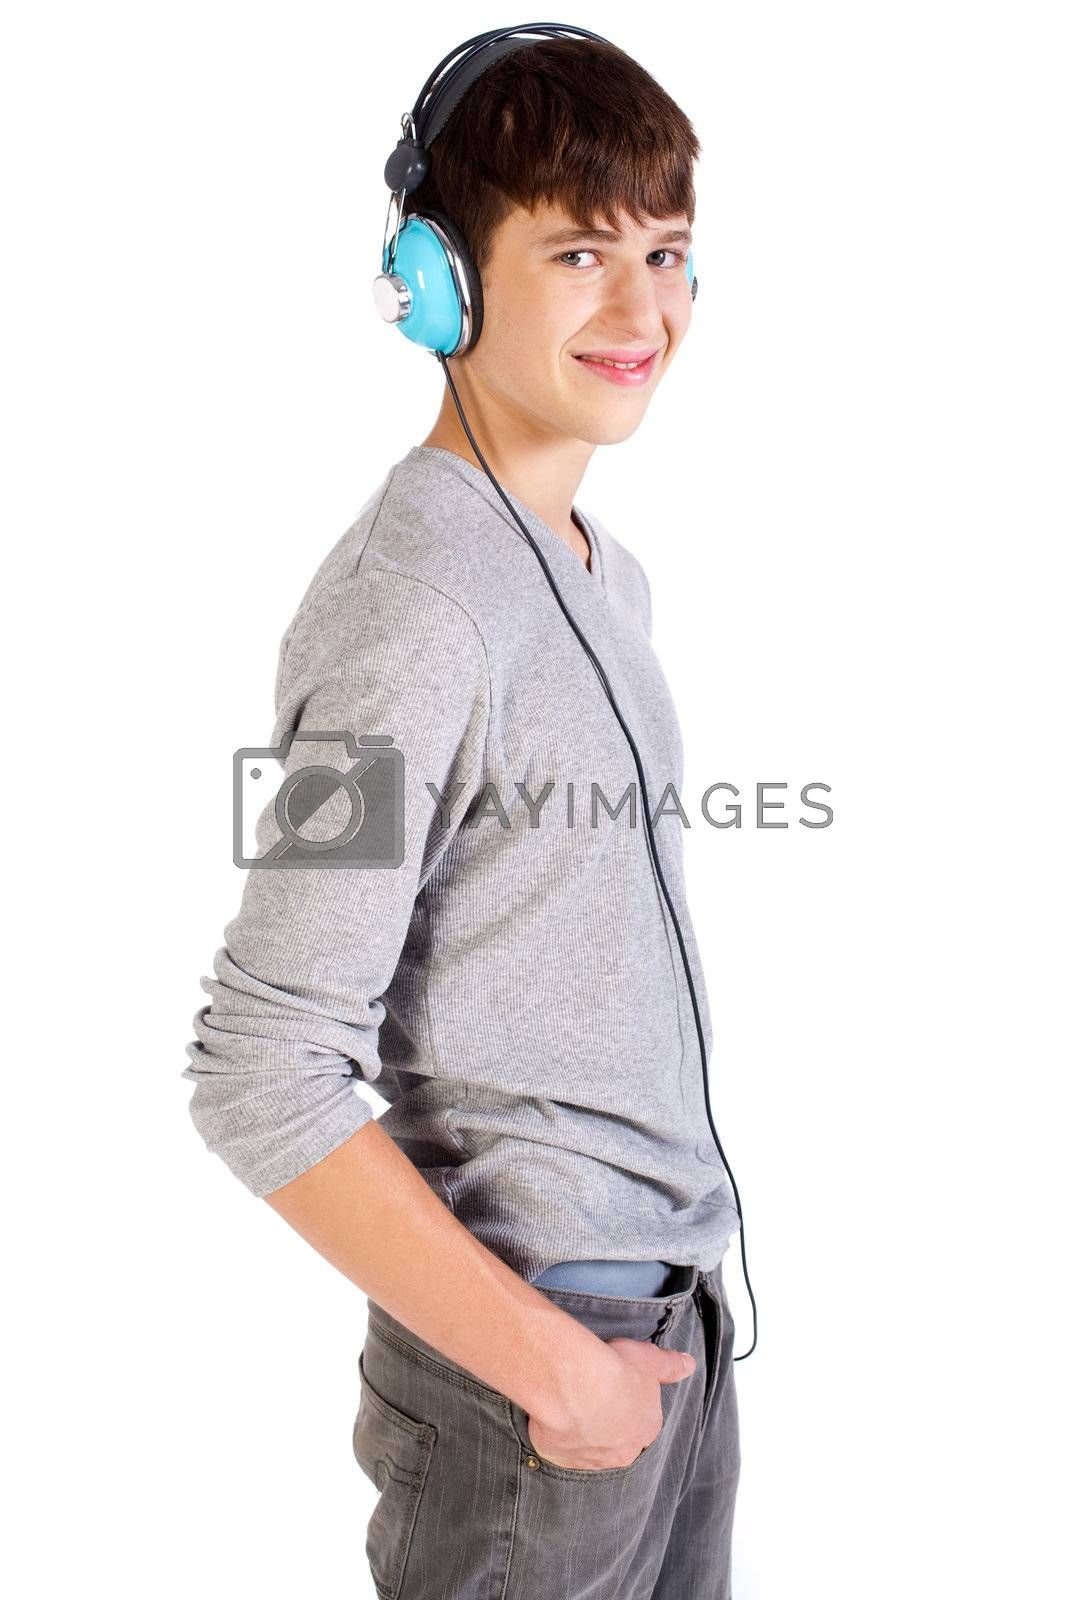 Teenager with headphones isolated over a white background.